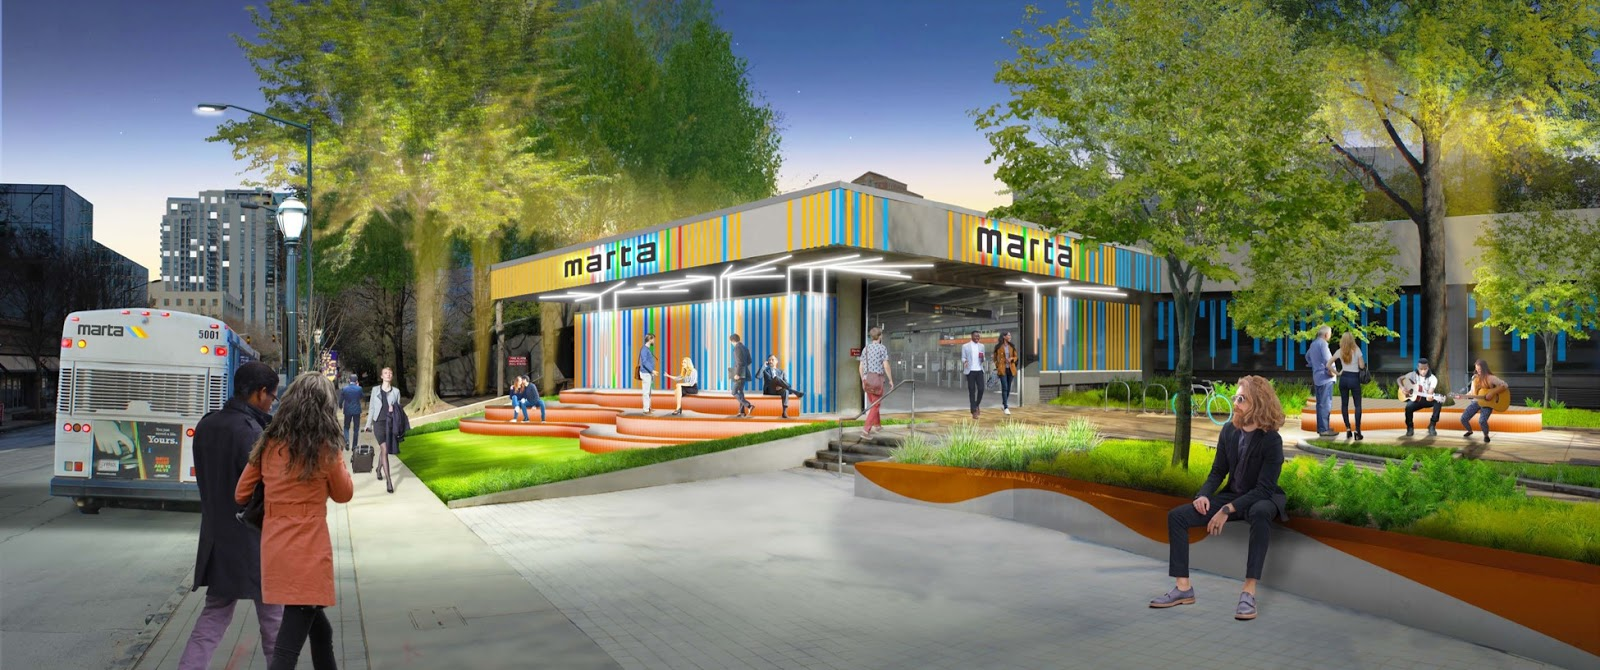 A rendering of the Arts Center MARTA station, as seen from West Peachtree Street, with new green space and colorful signage.